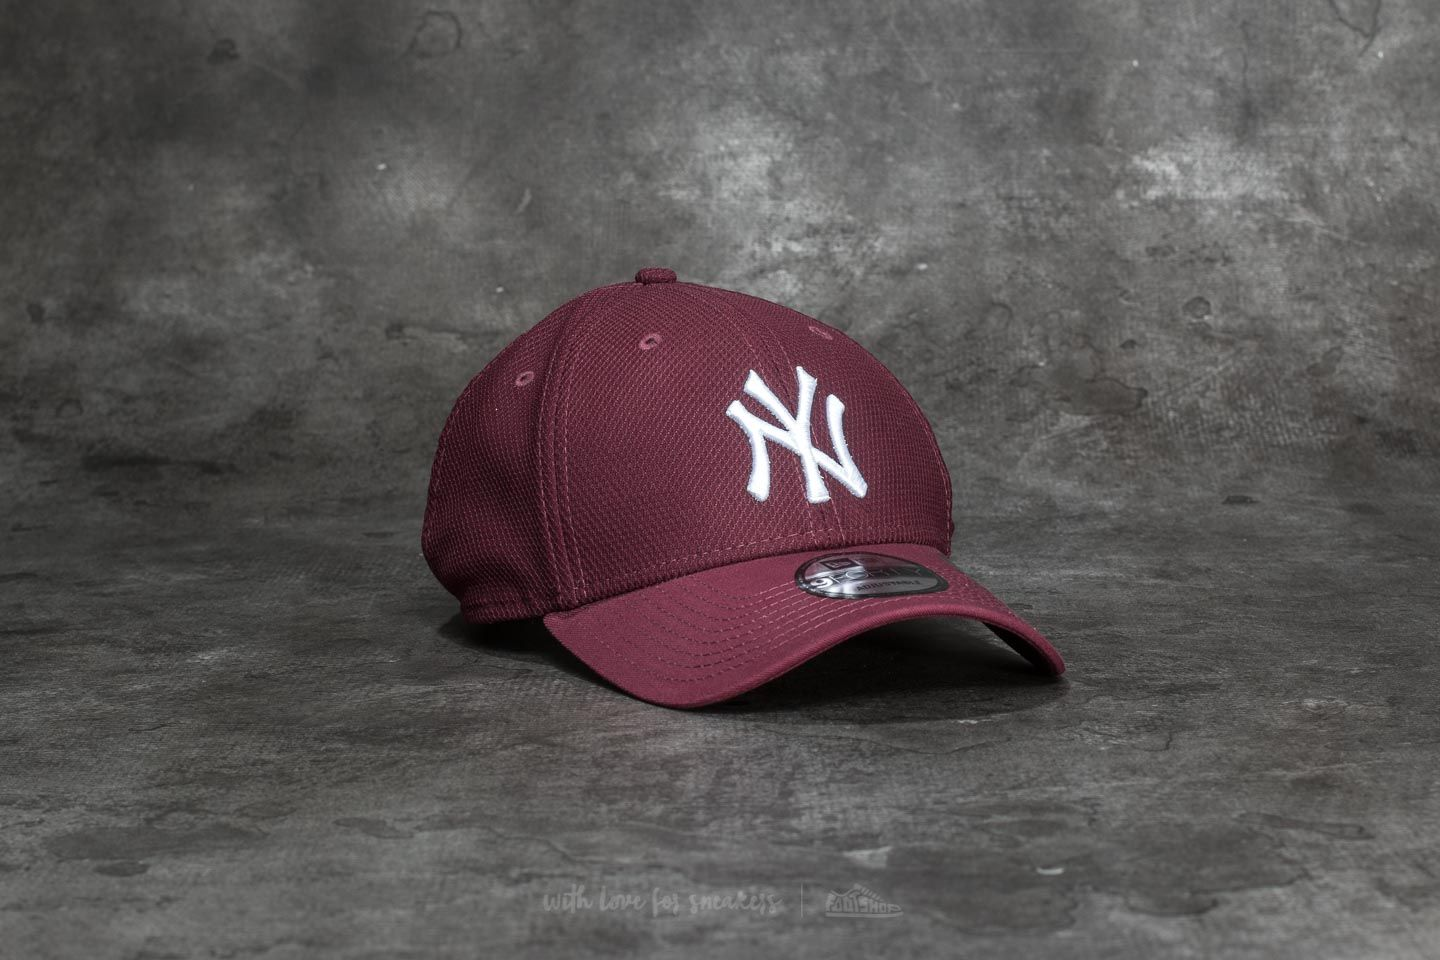 9de986960f7 New Era 9Forty Diamond Era Essential New York Yankees Cap Maroon  White